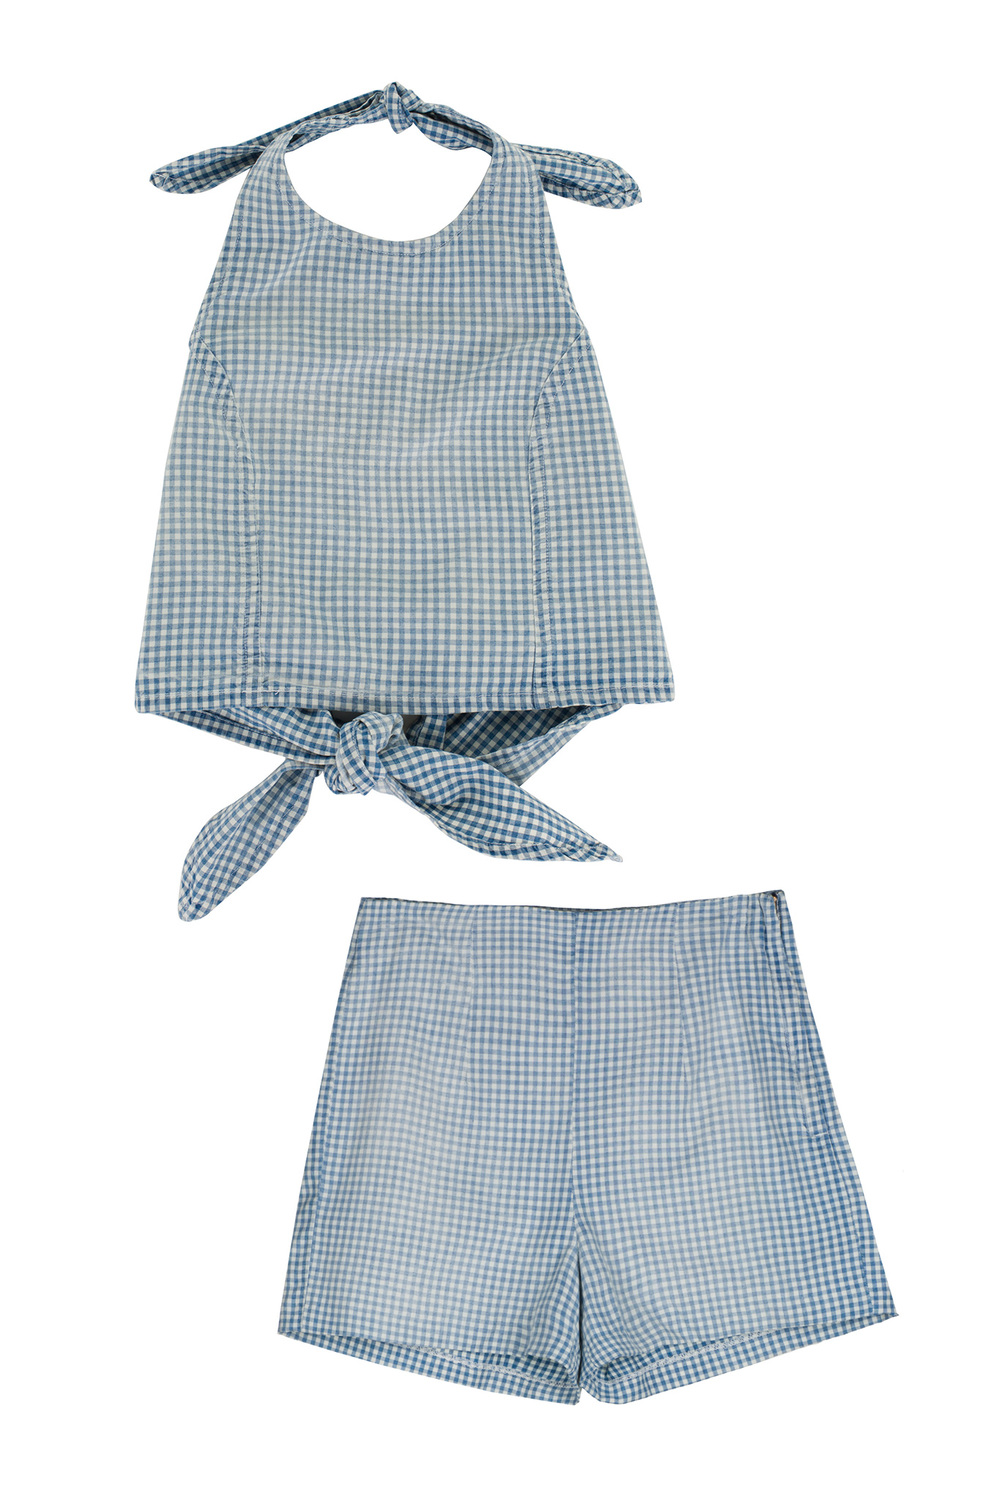 04-04-gingham-spring-shopping-picks.jpg